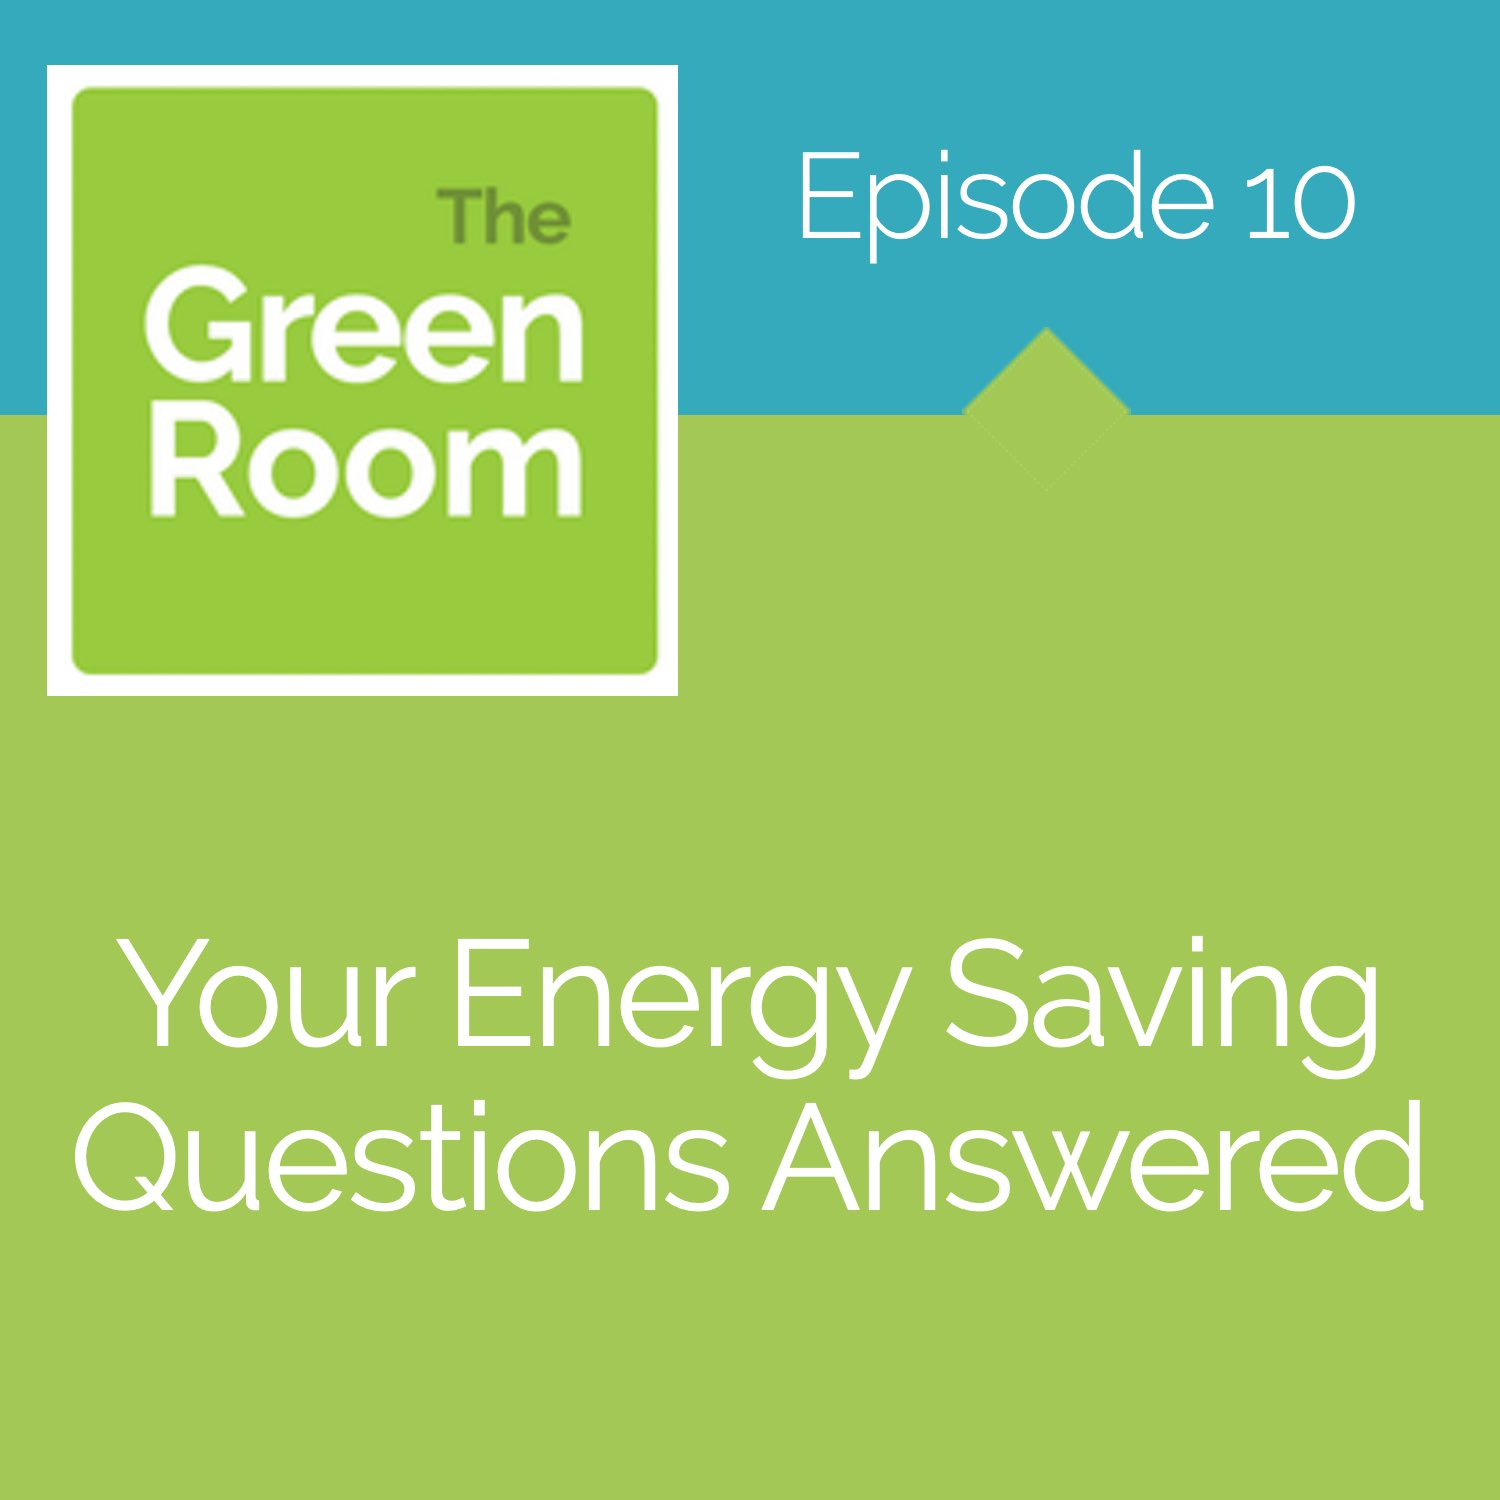 Your Energy Saving Questions Answered